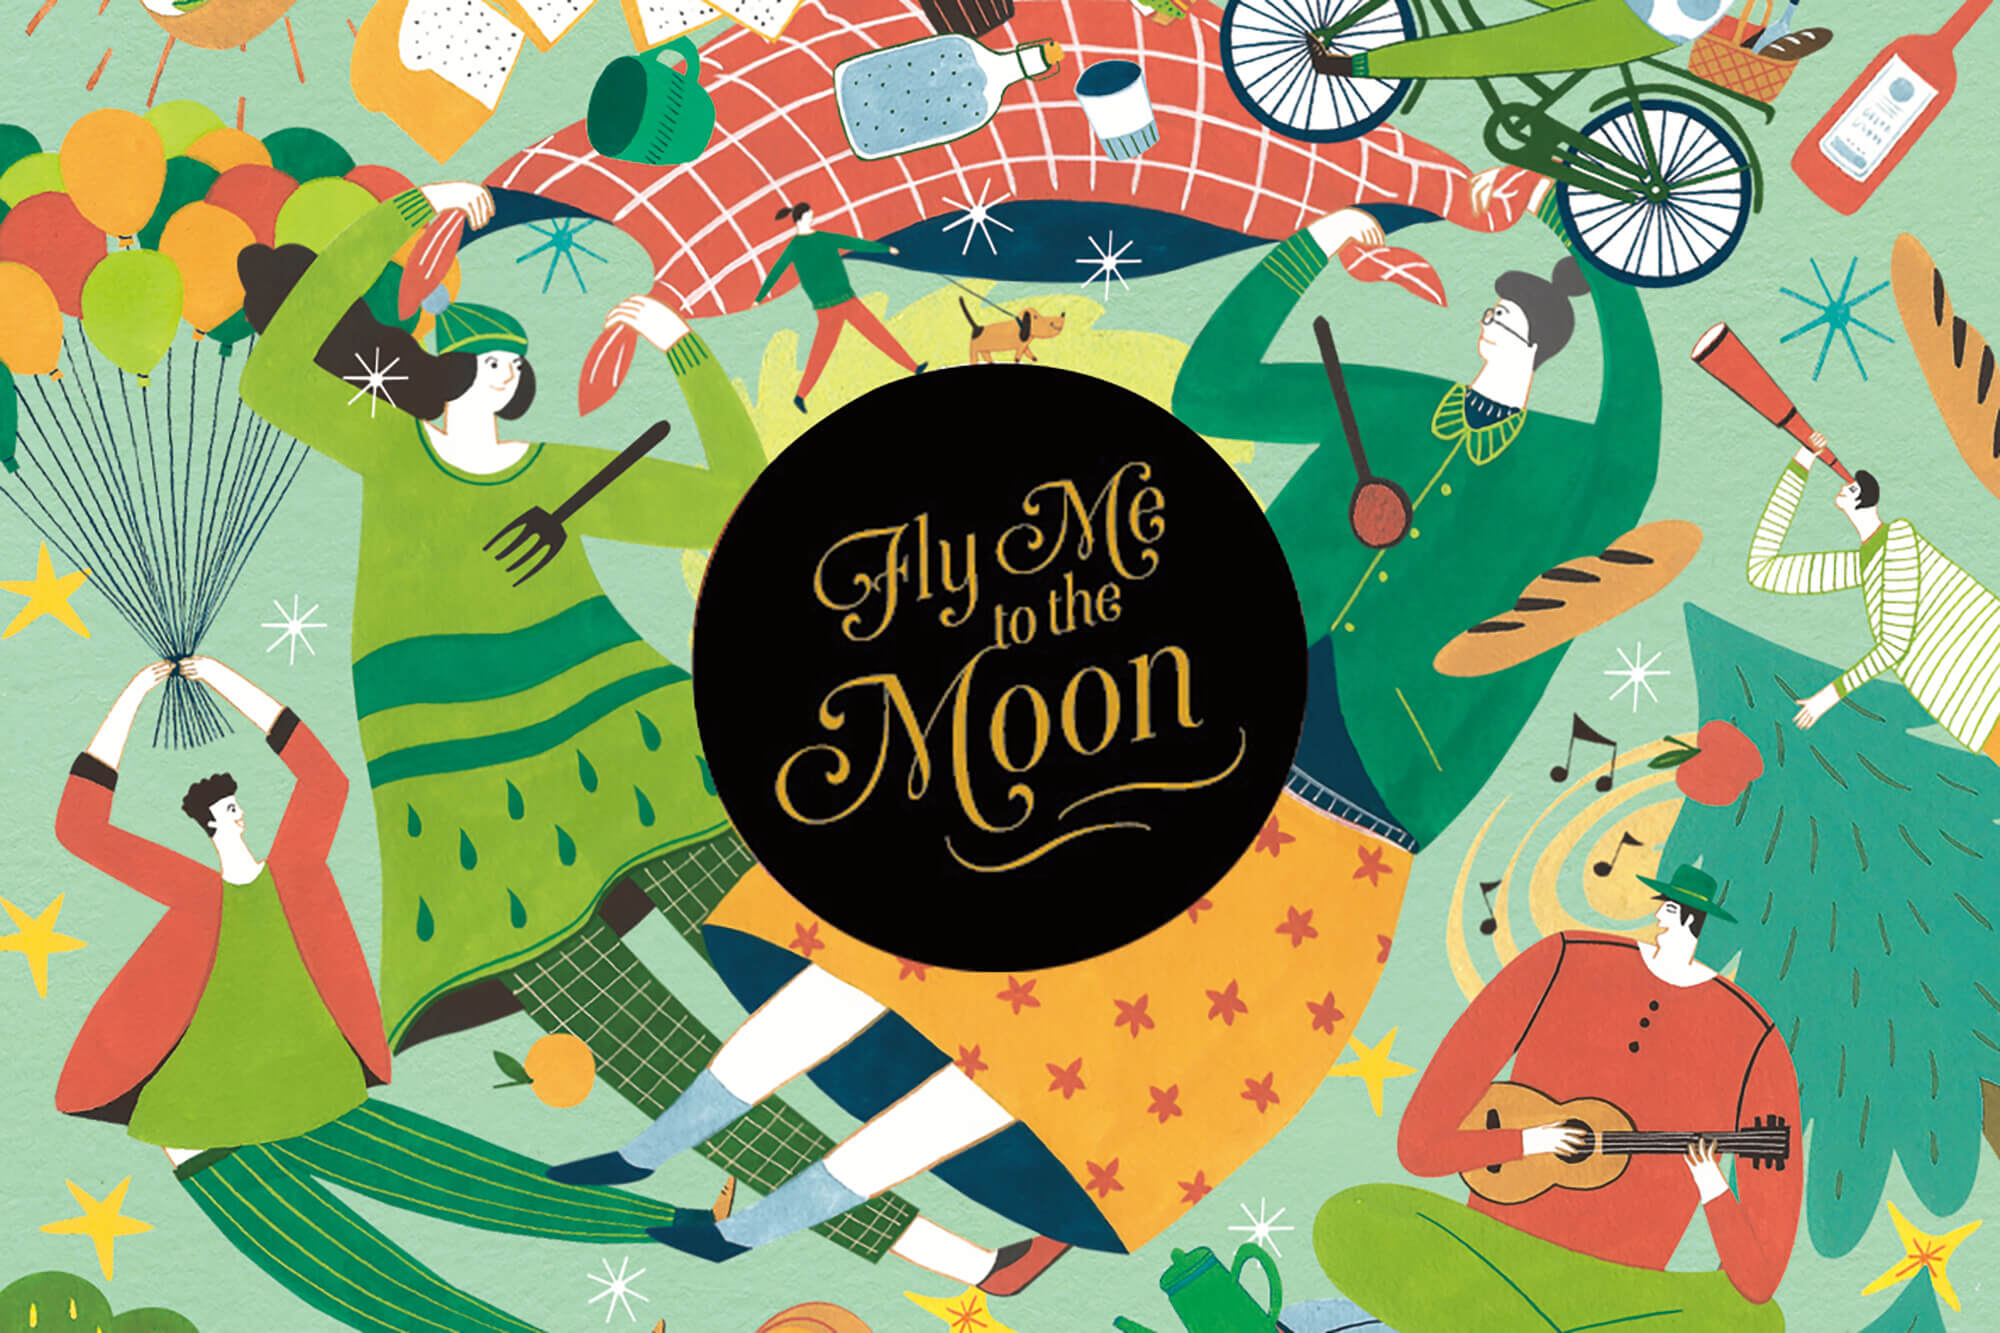 Fly me to the moon 国宾大饭店中秋礼盒 ,与Accent collective设计公司合作。